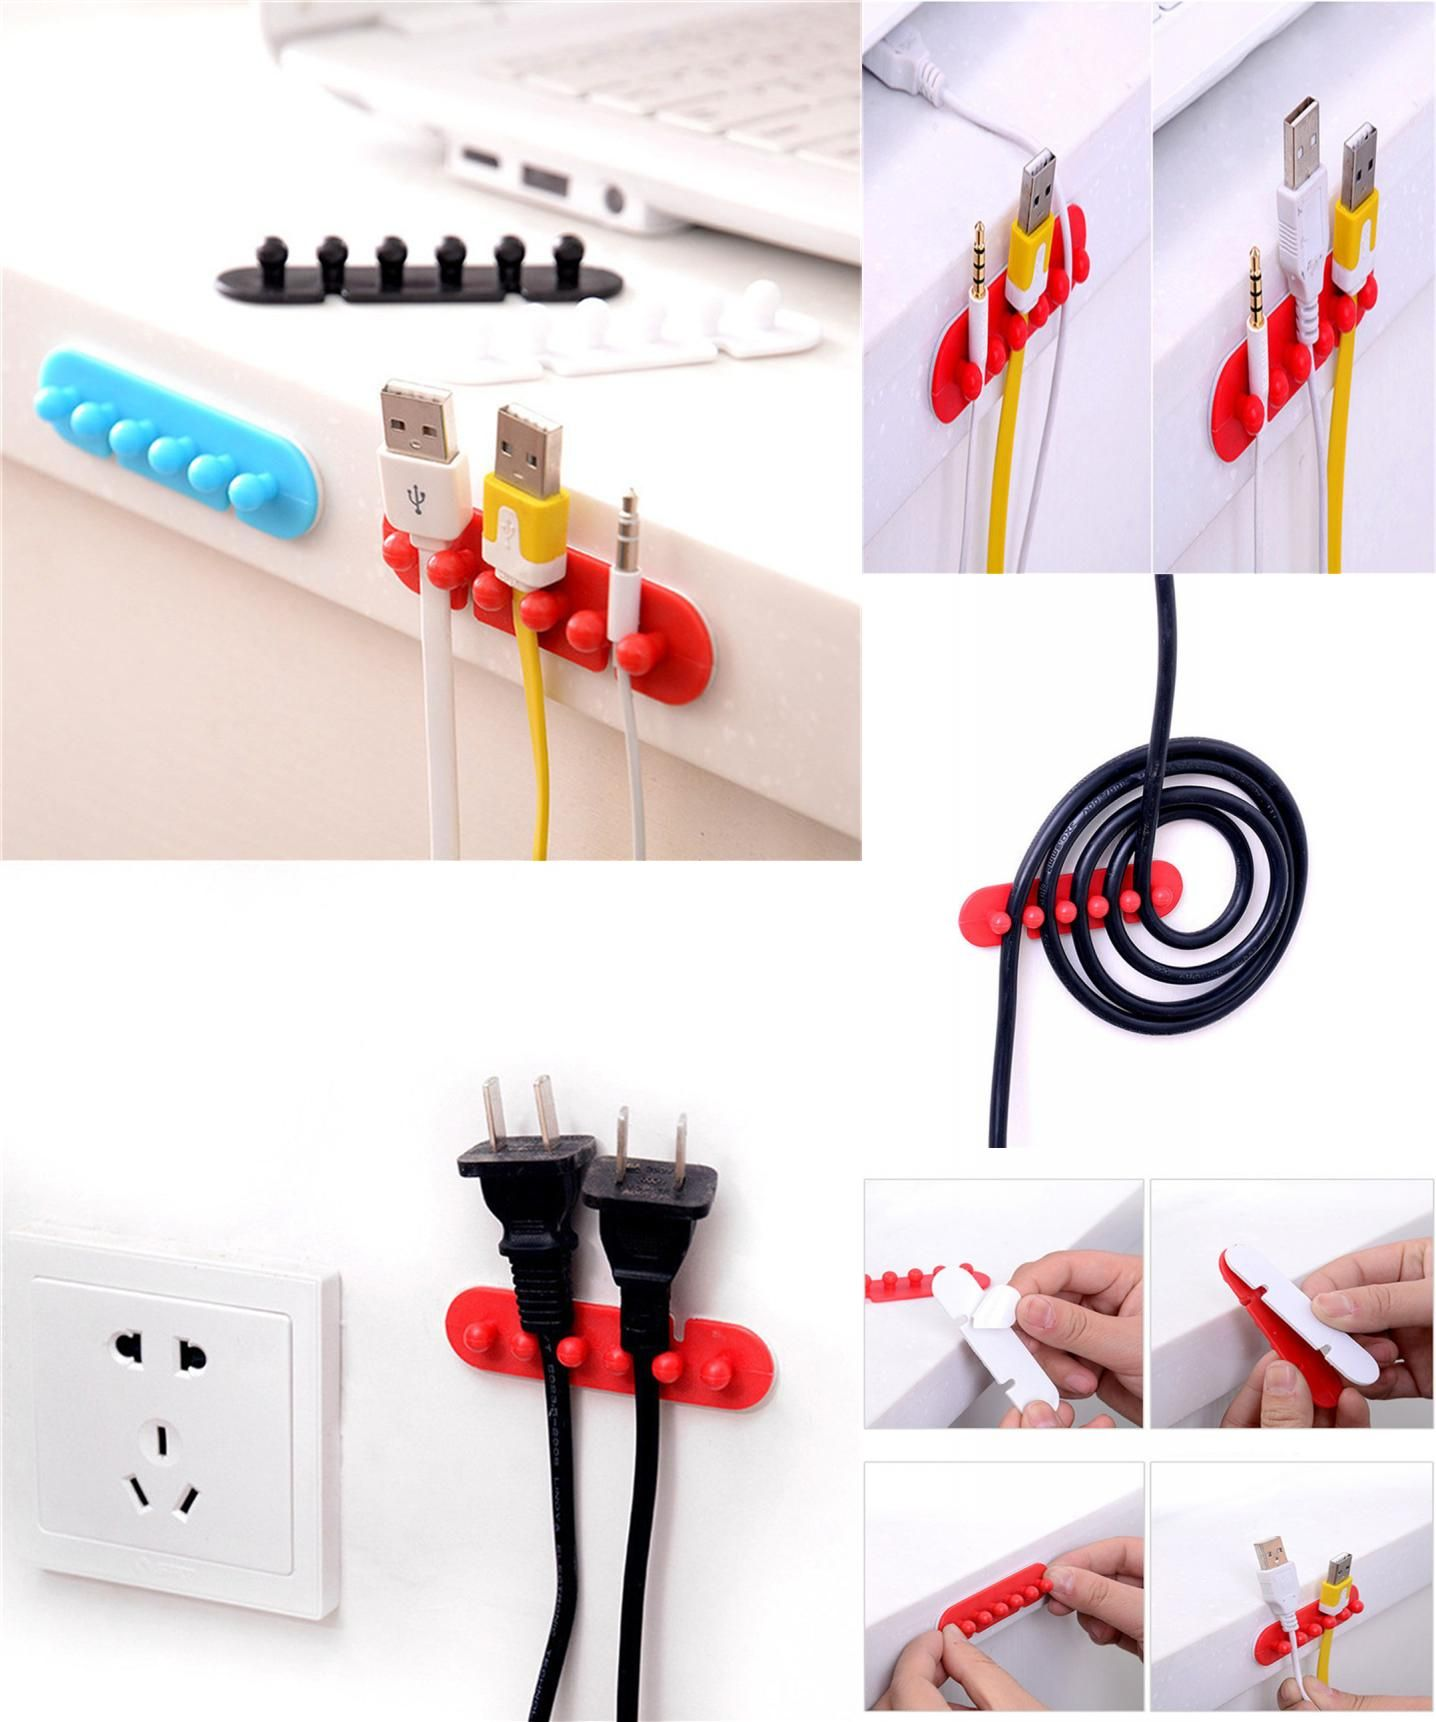 2X Wire Cord Clip Kabel Line Holder Tie Fixer Adhesive Clamp Organizer Drop